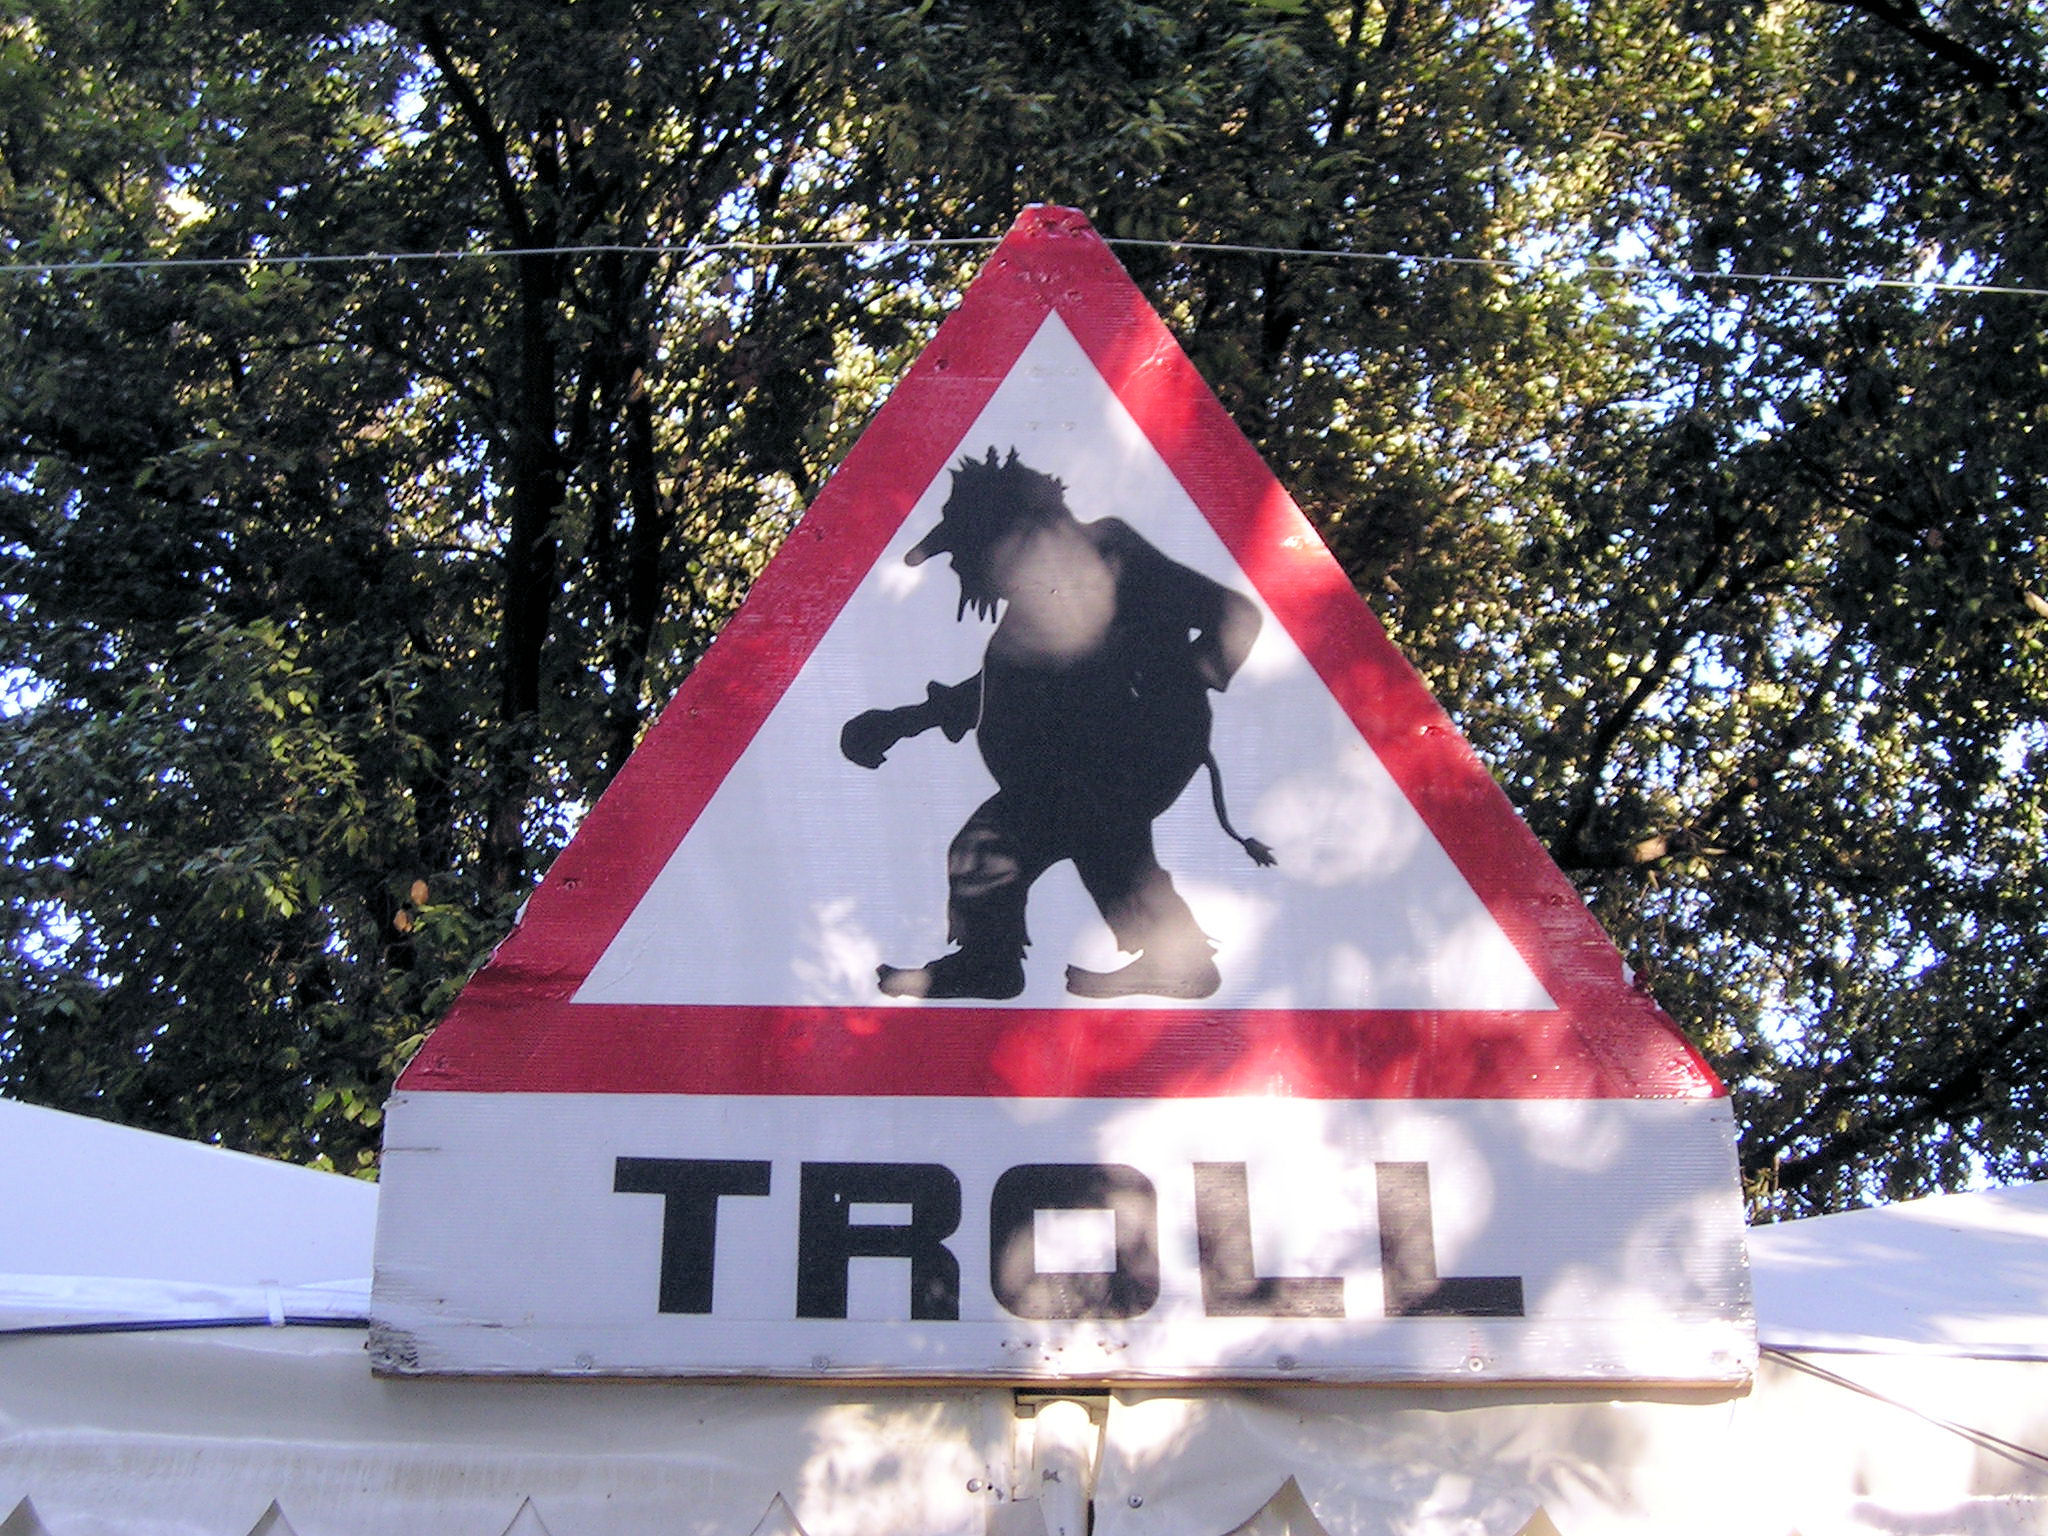 Troll warning!